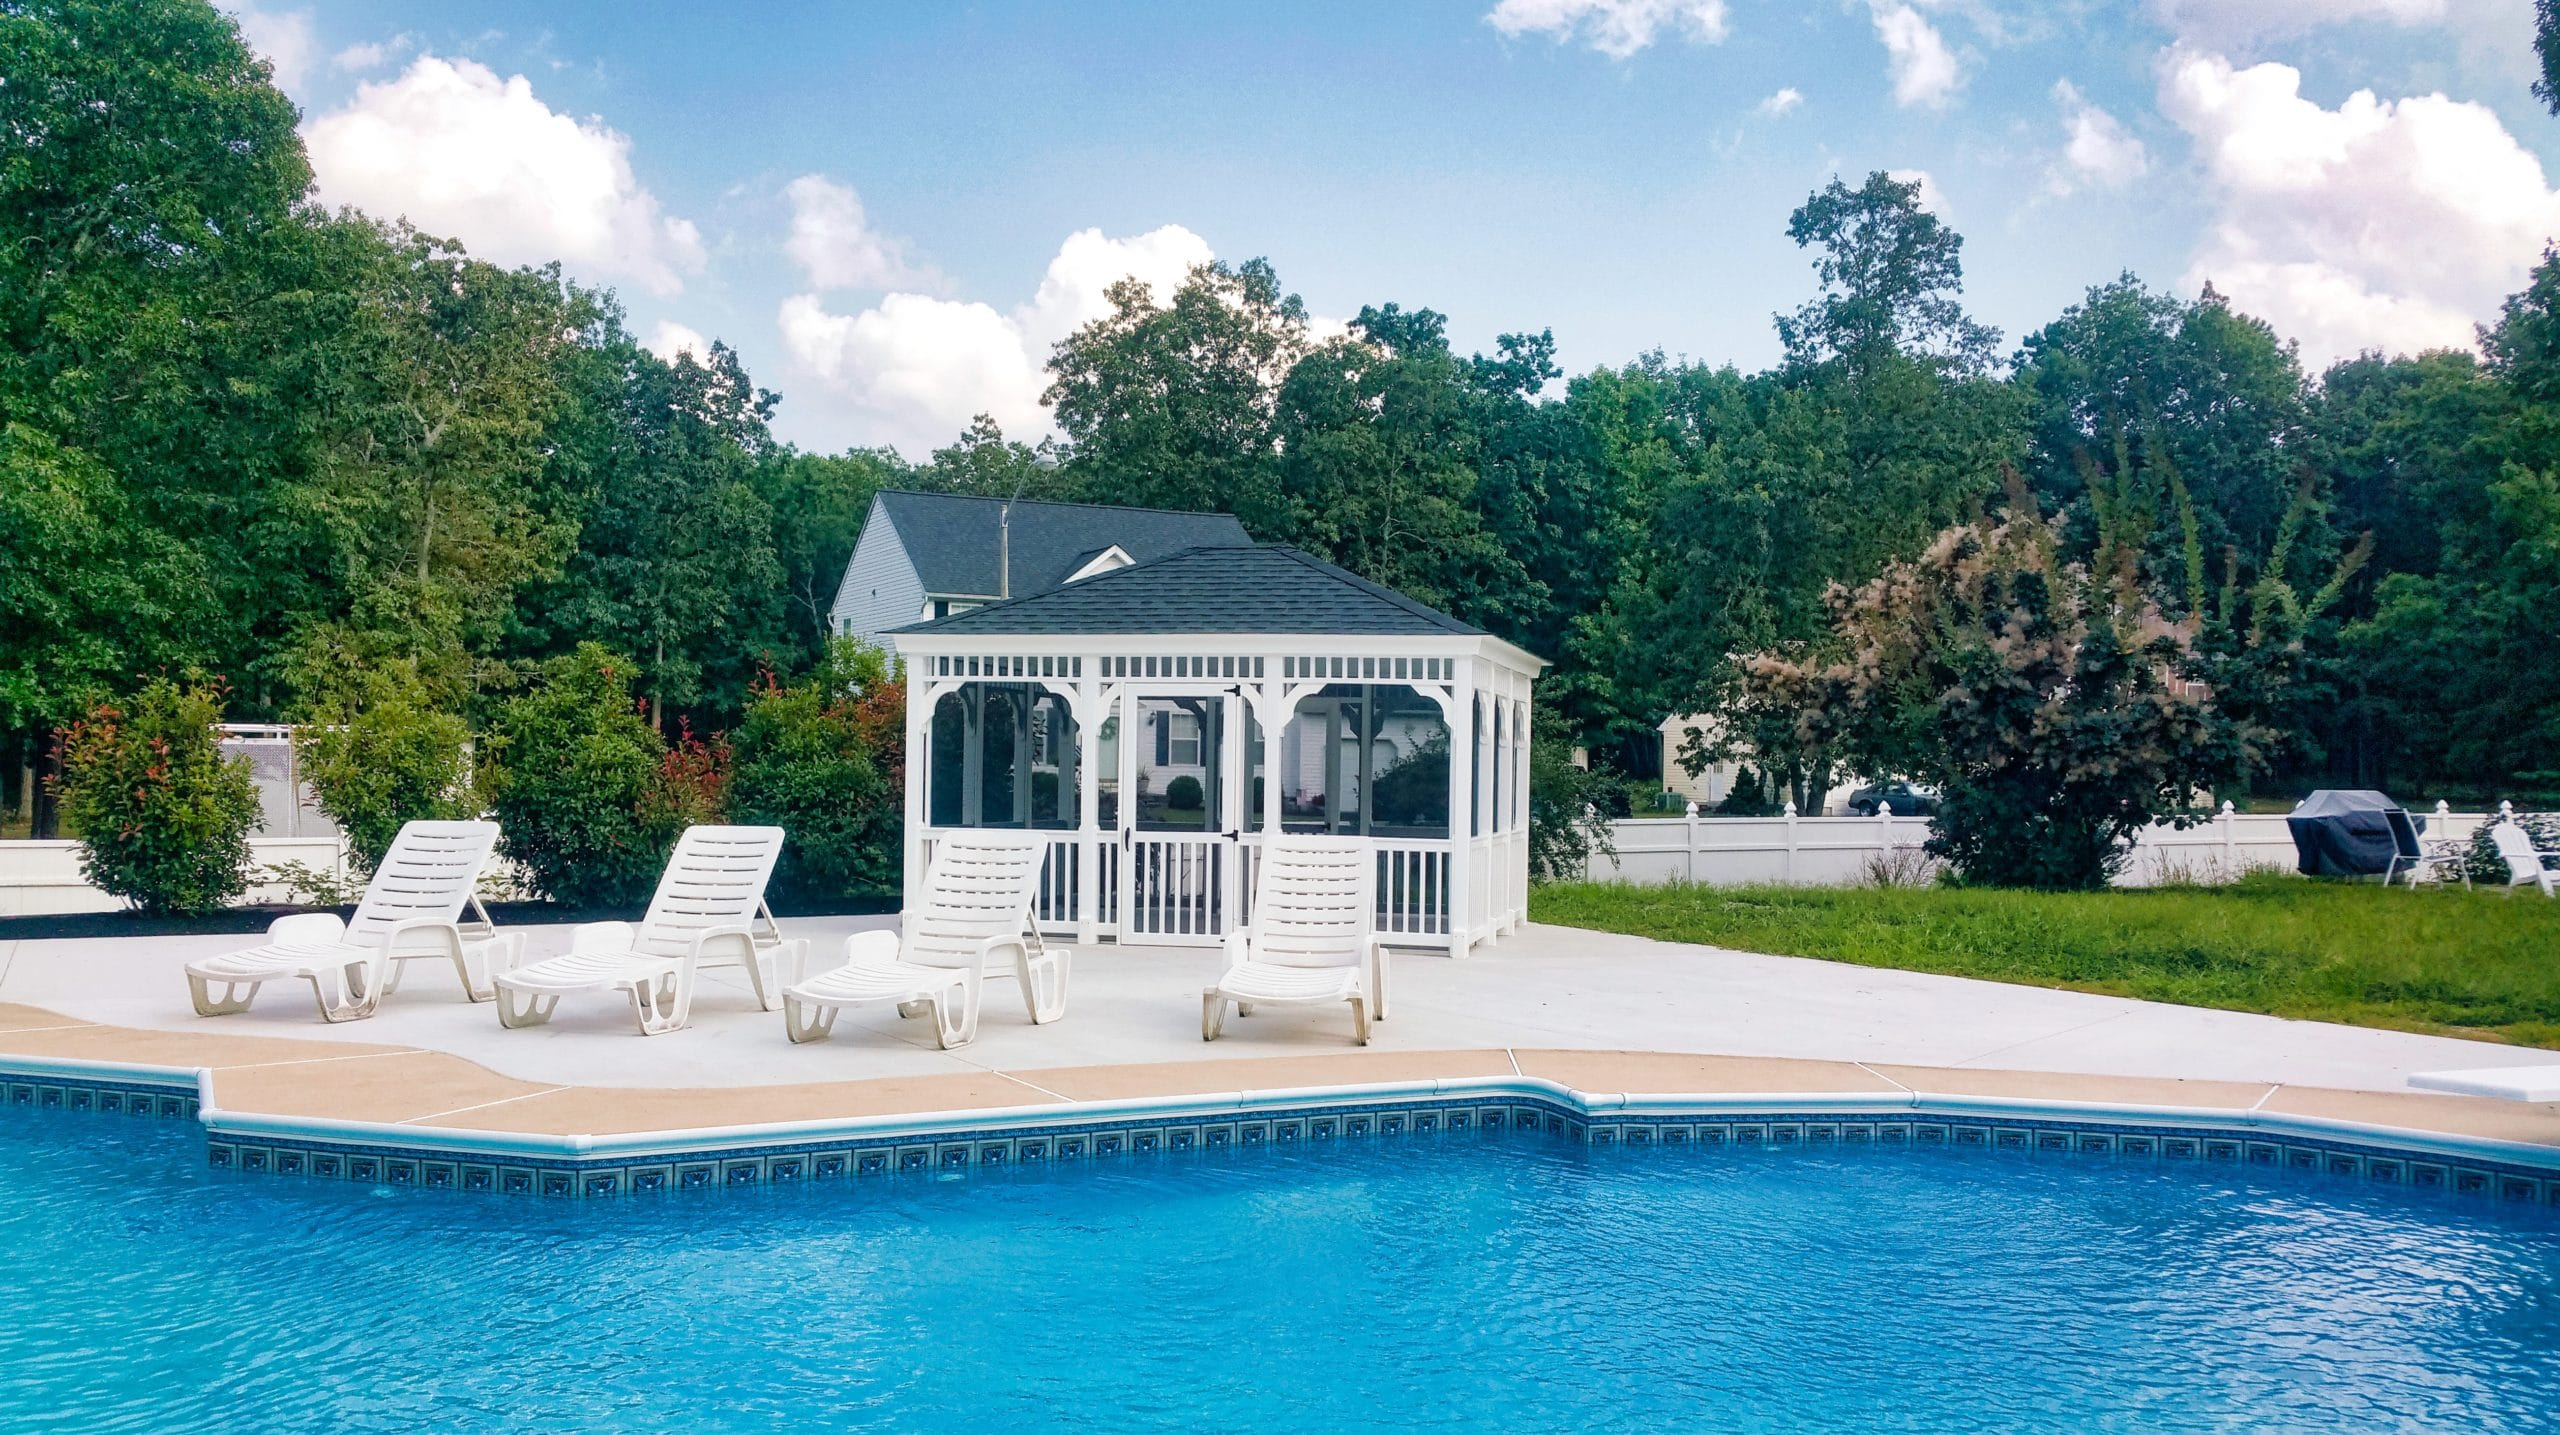 12x14 Vinyl Rectangle Poolside Gazebo 1